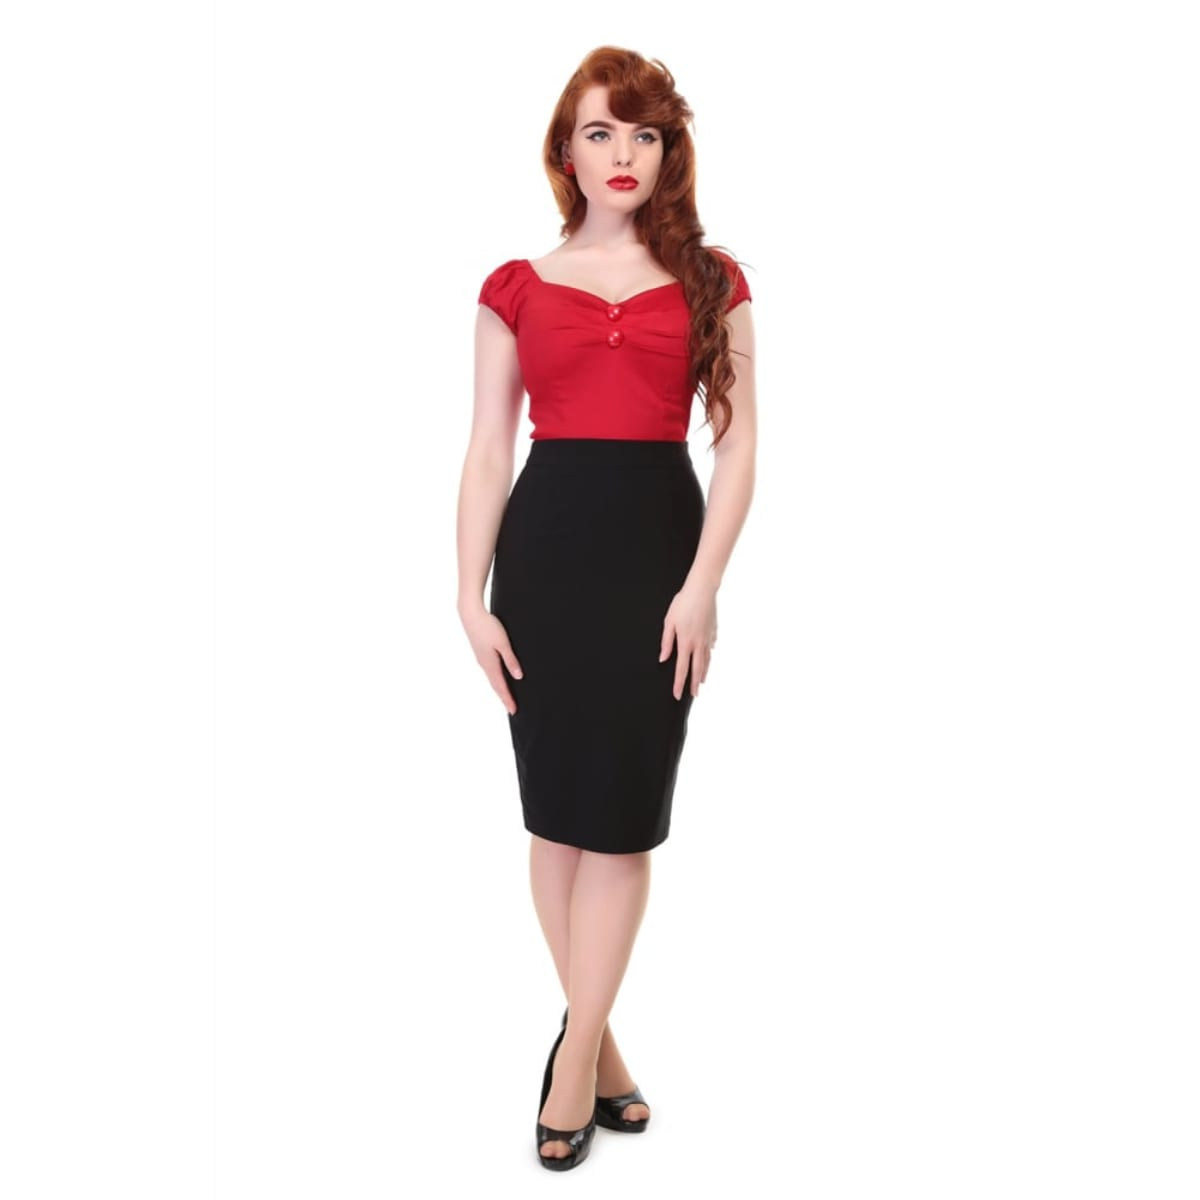 Collectif 50-tals vintage rockabilly pennkjol